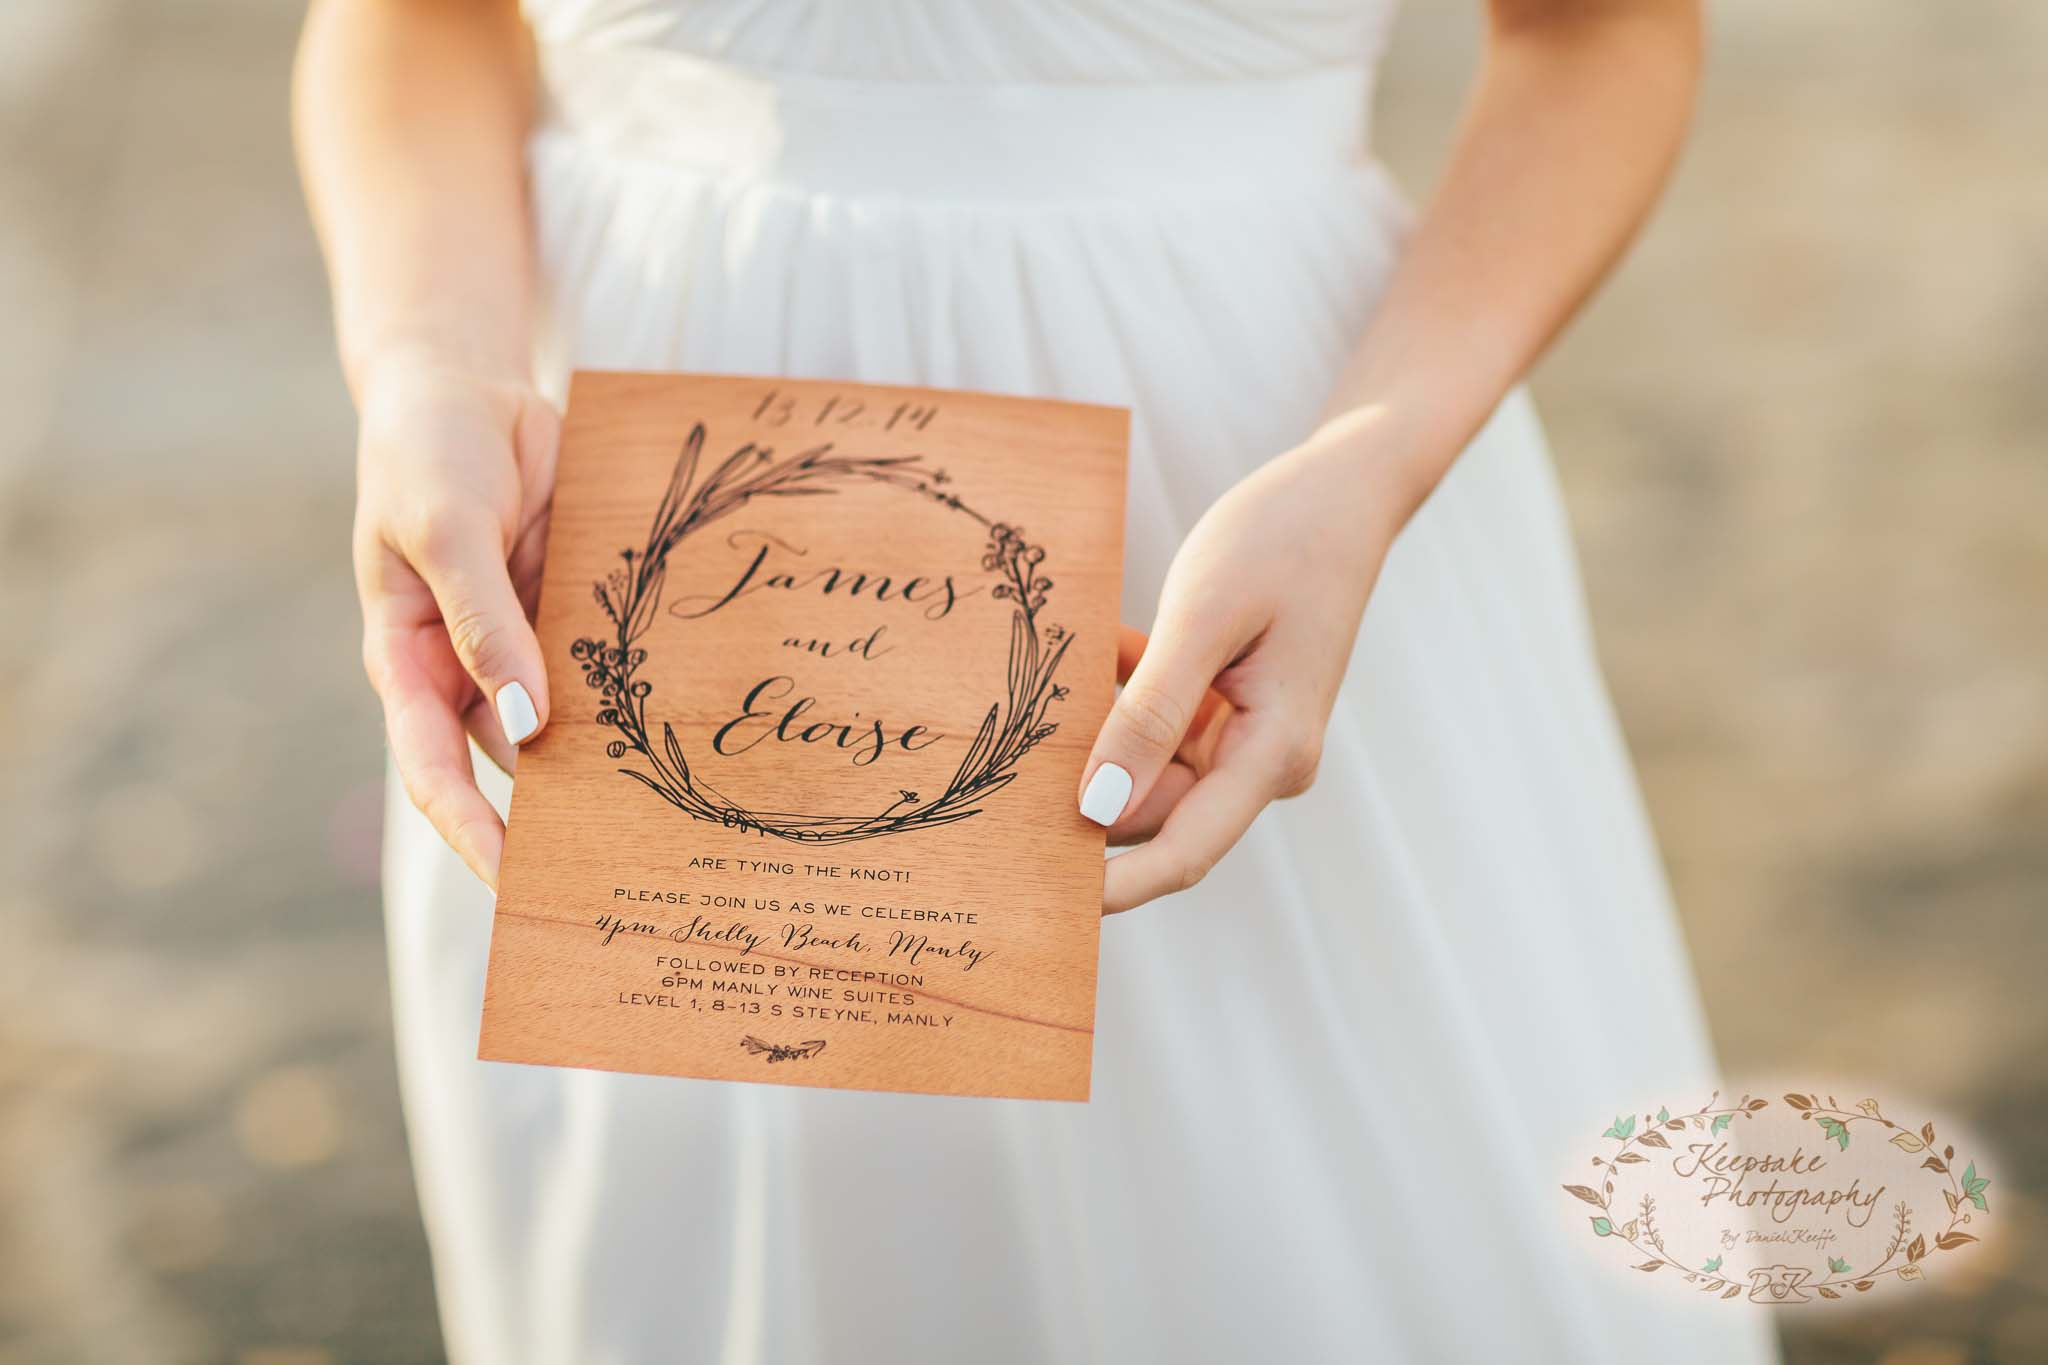 beach wedding inspiration wooden invitations sail and swan adelaide melbourne sydney perth rustic wedding invitations custom nautical sea ocean seaside